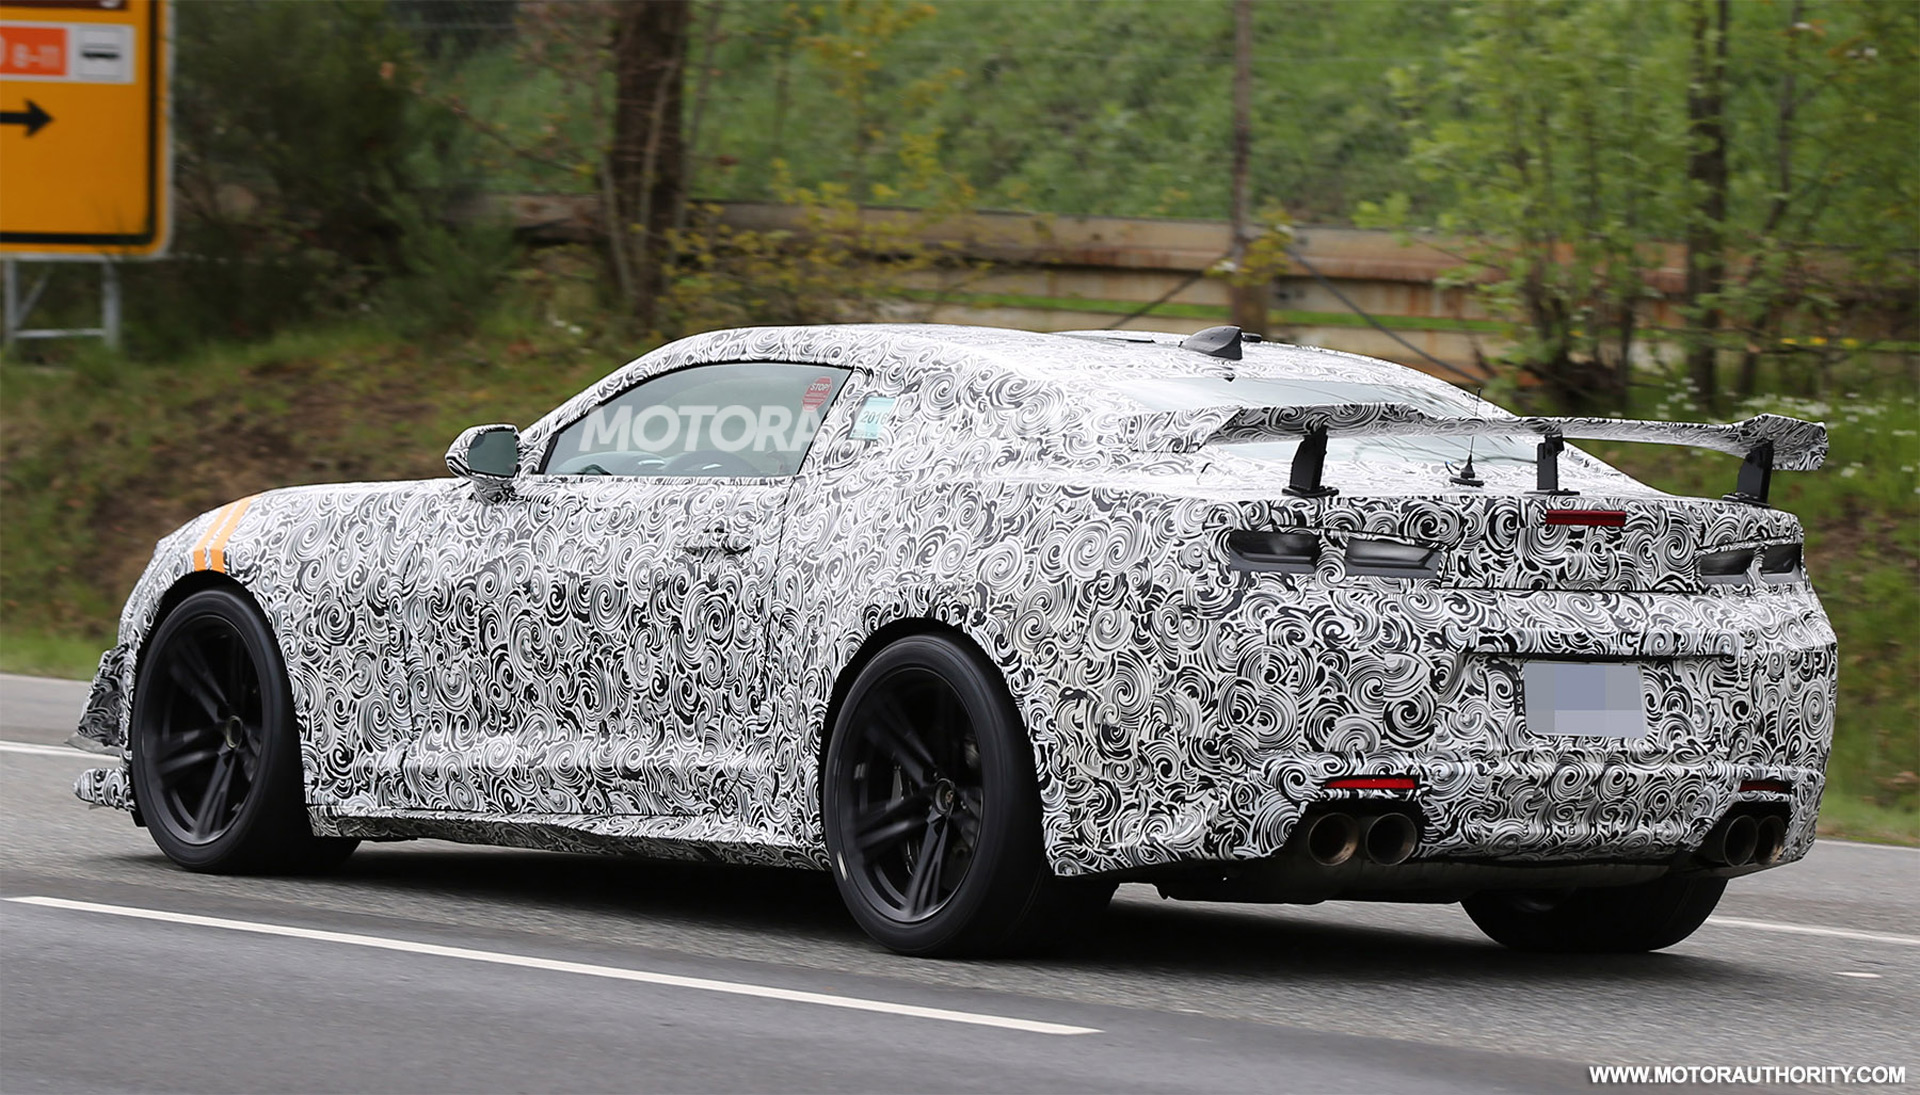 2018 Audi A8, 727-hp Ford Mustang, 2018 Camaro Z/28, 'Top Gear' news ...